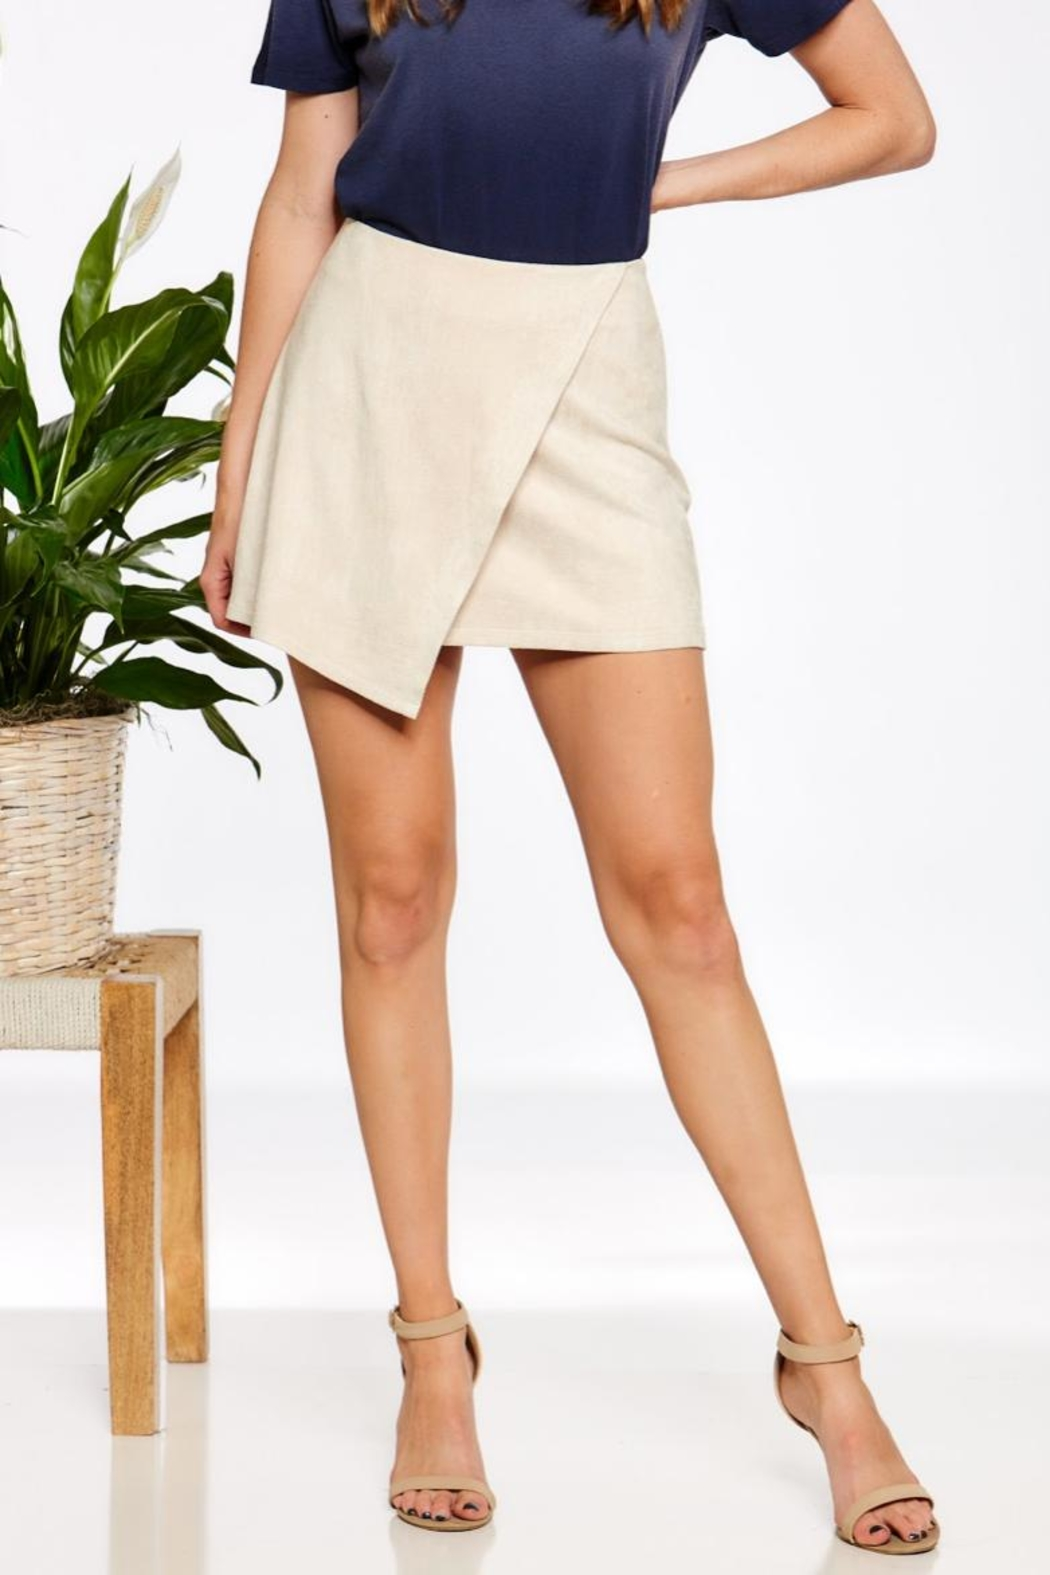 Asher by Fab'rik Barfield Skirt - Main Image